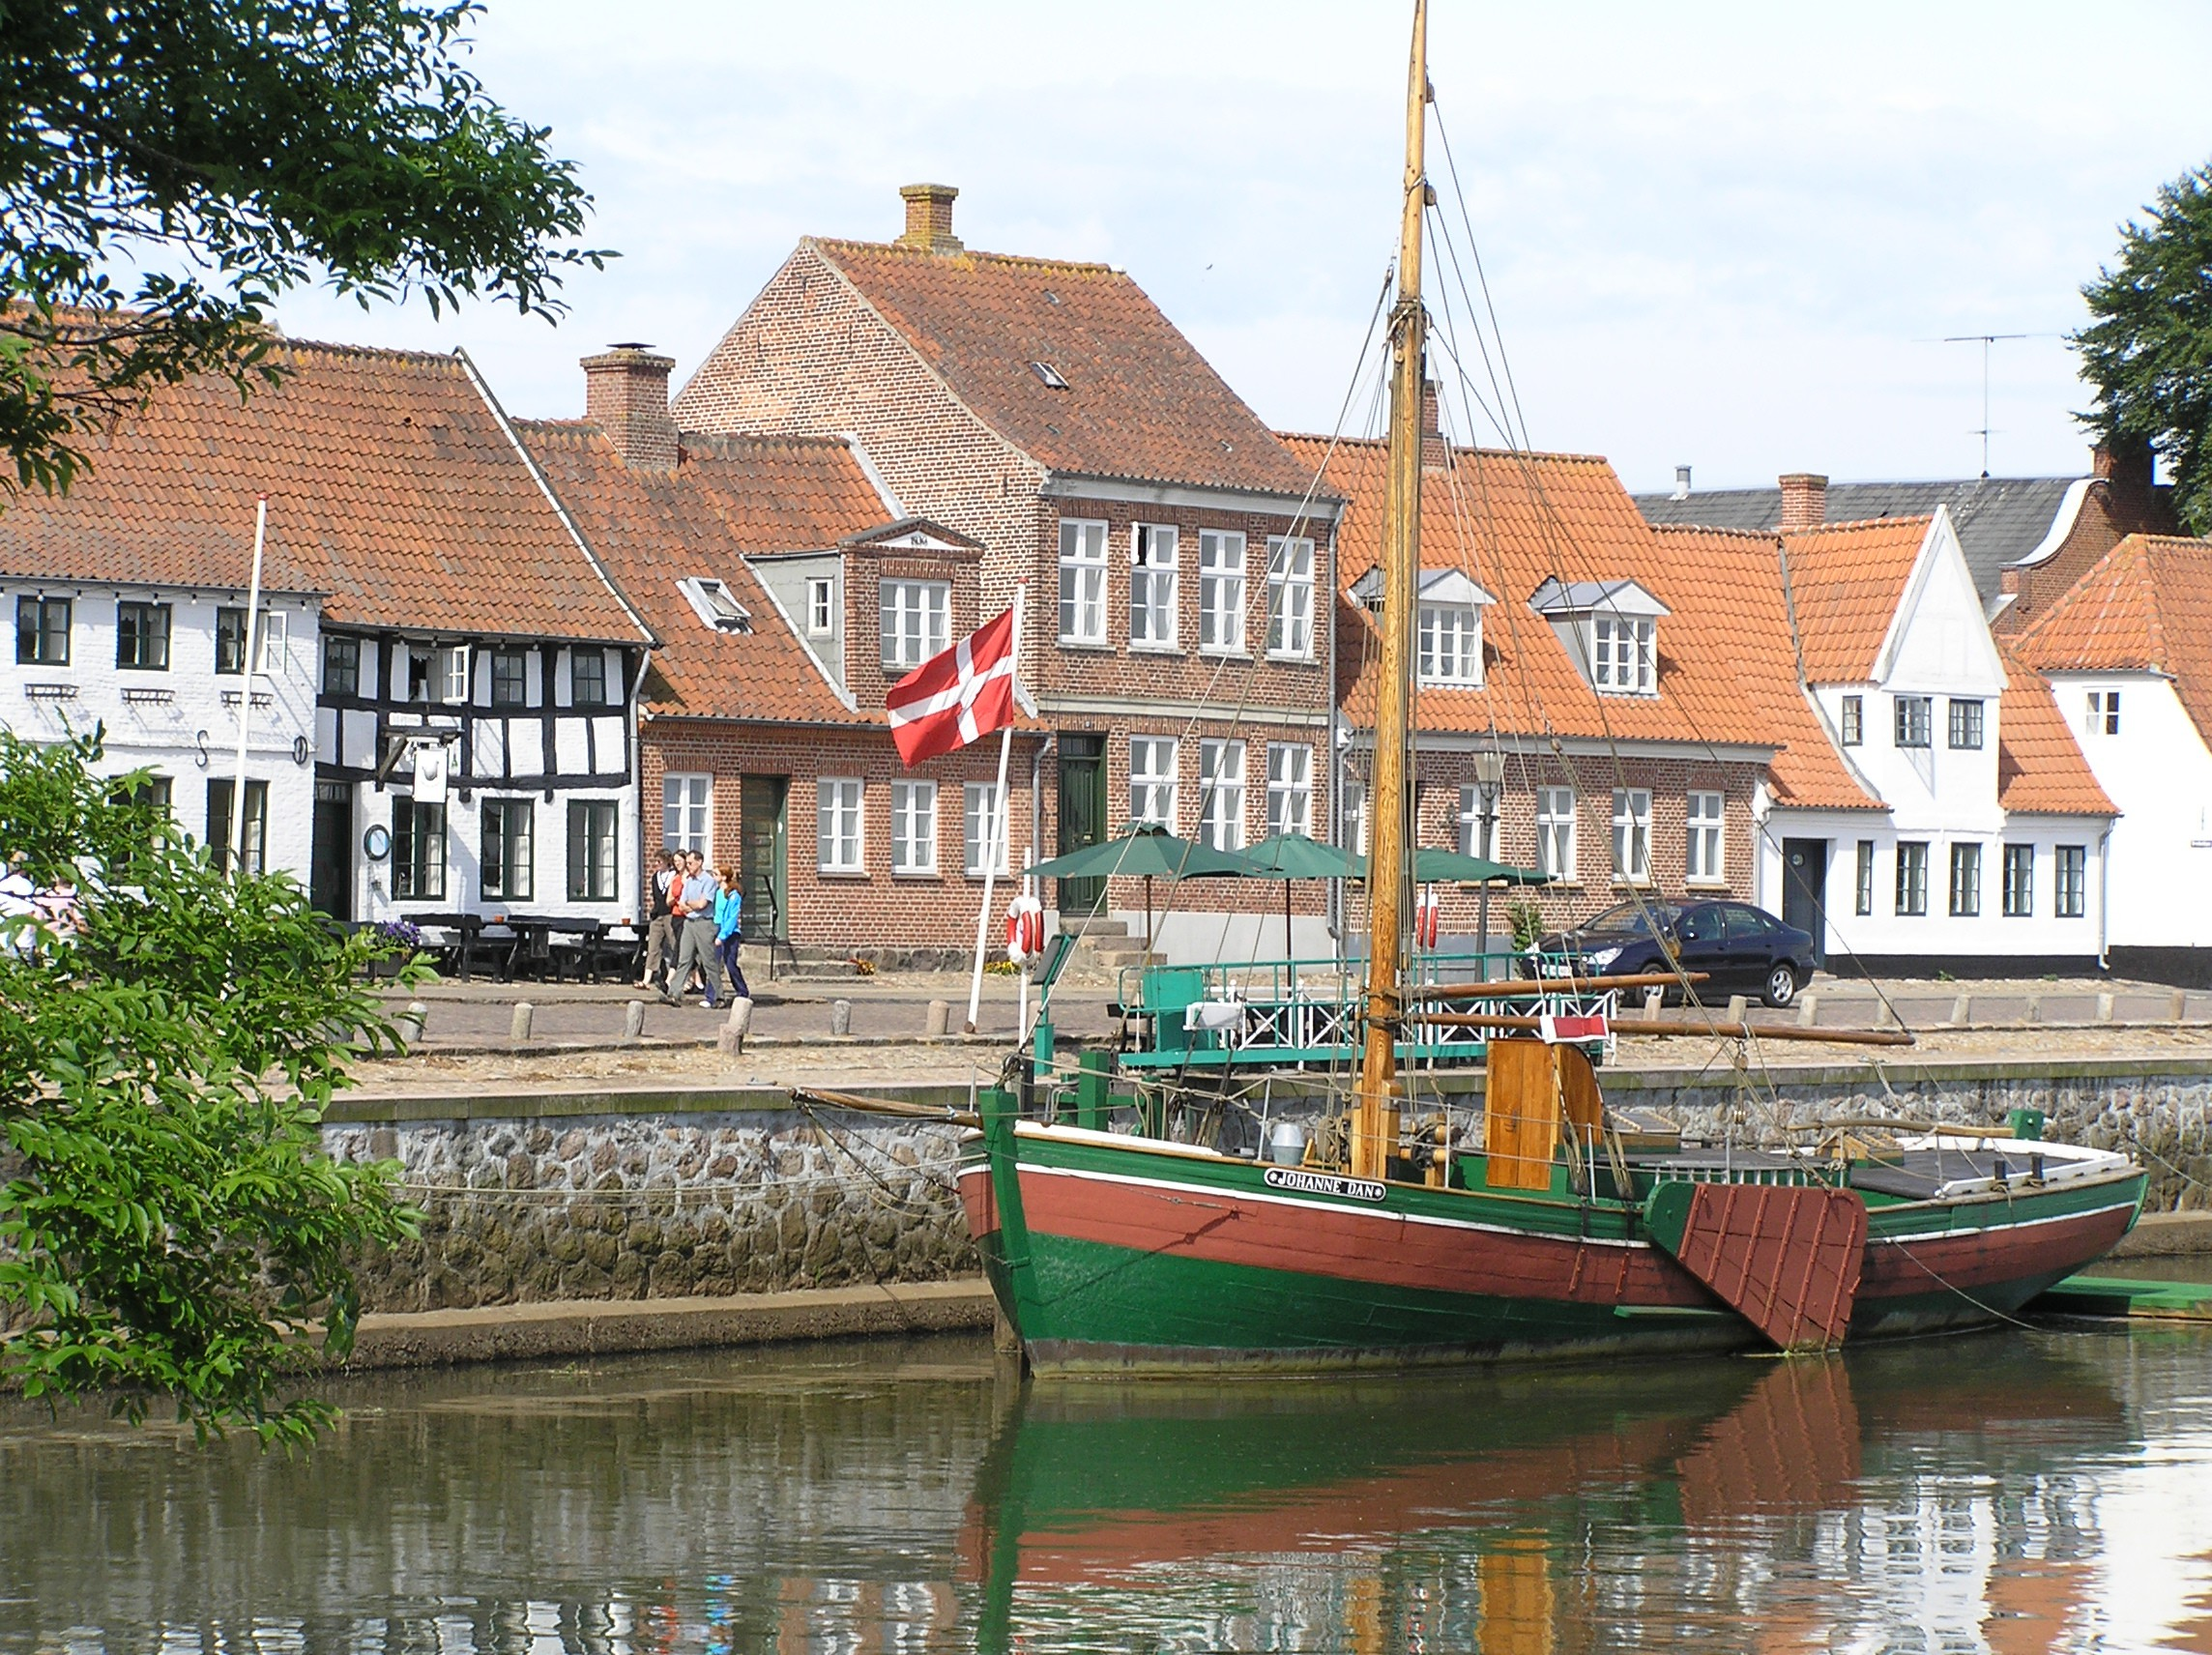 Discover Ribe The Oldest Town In Scandinavia